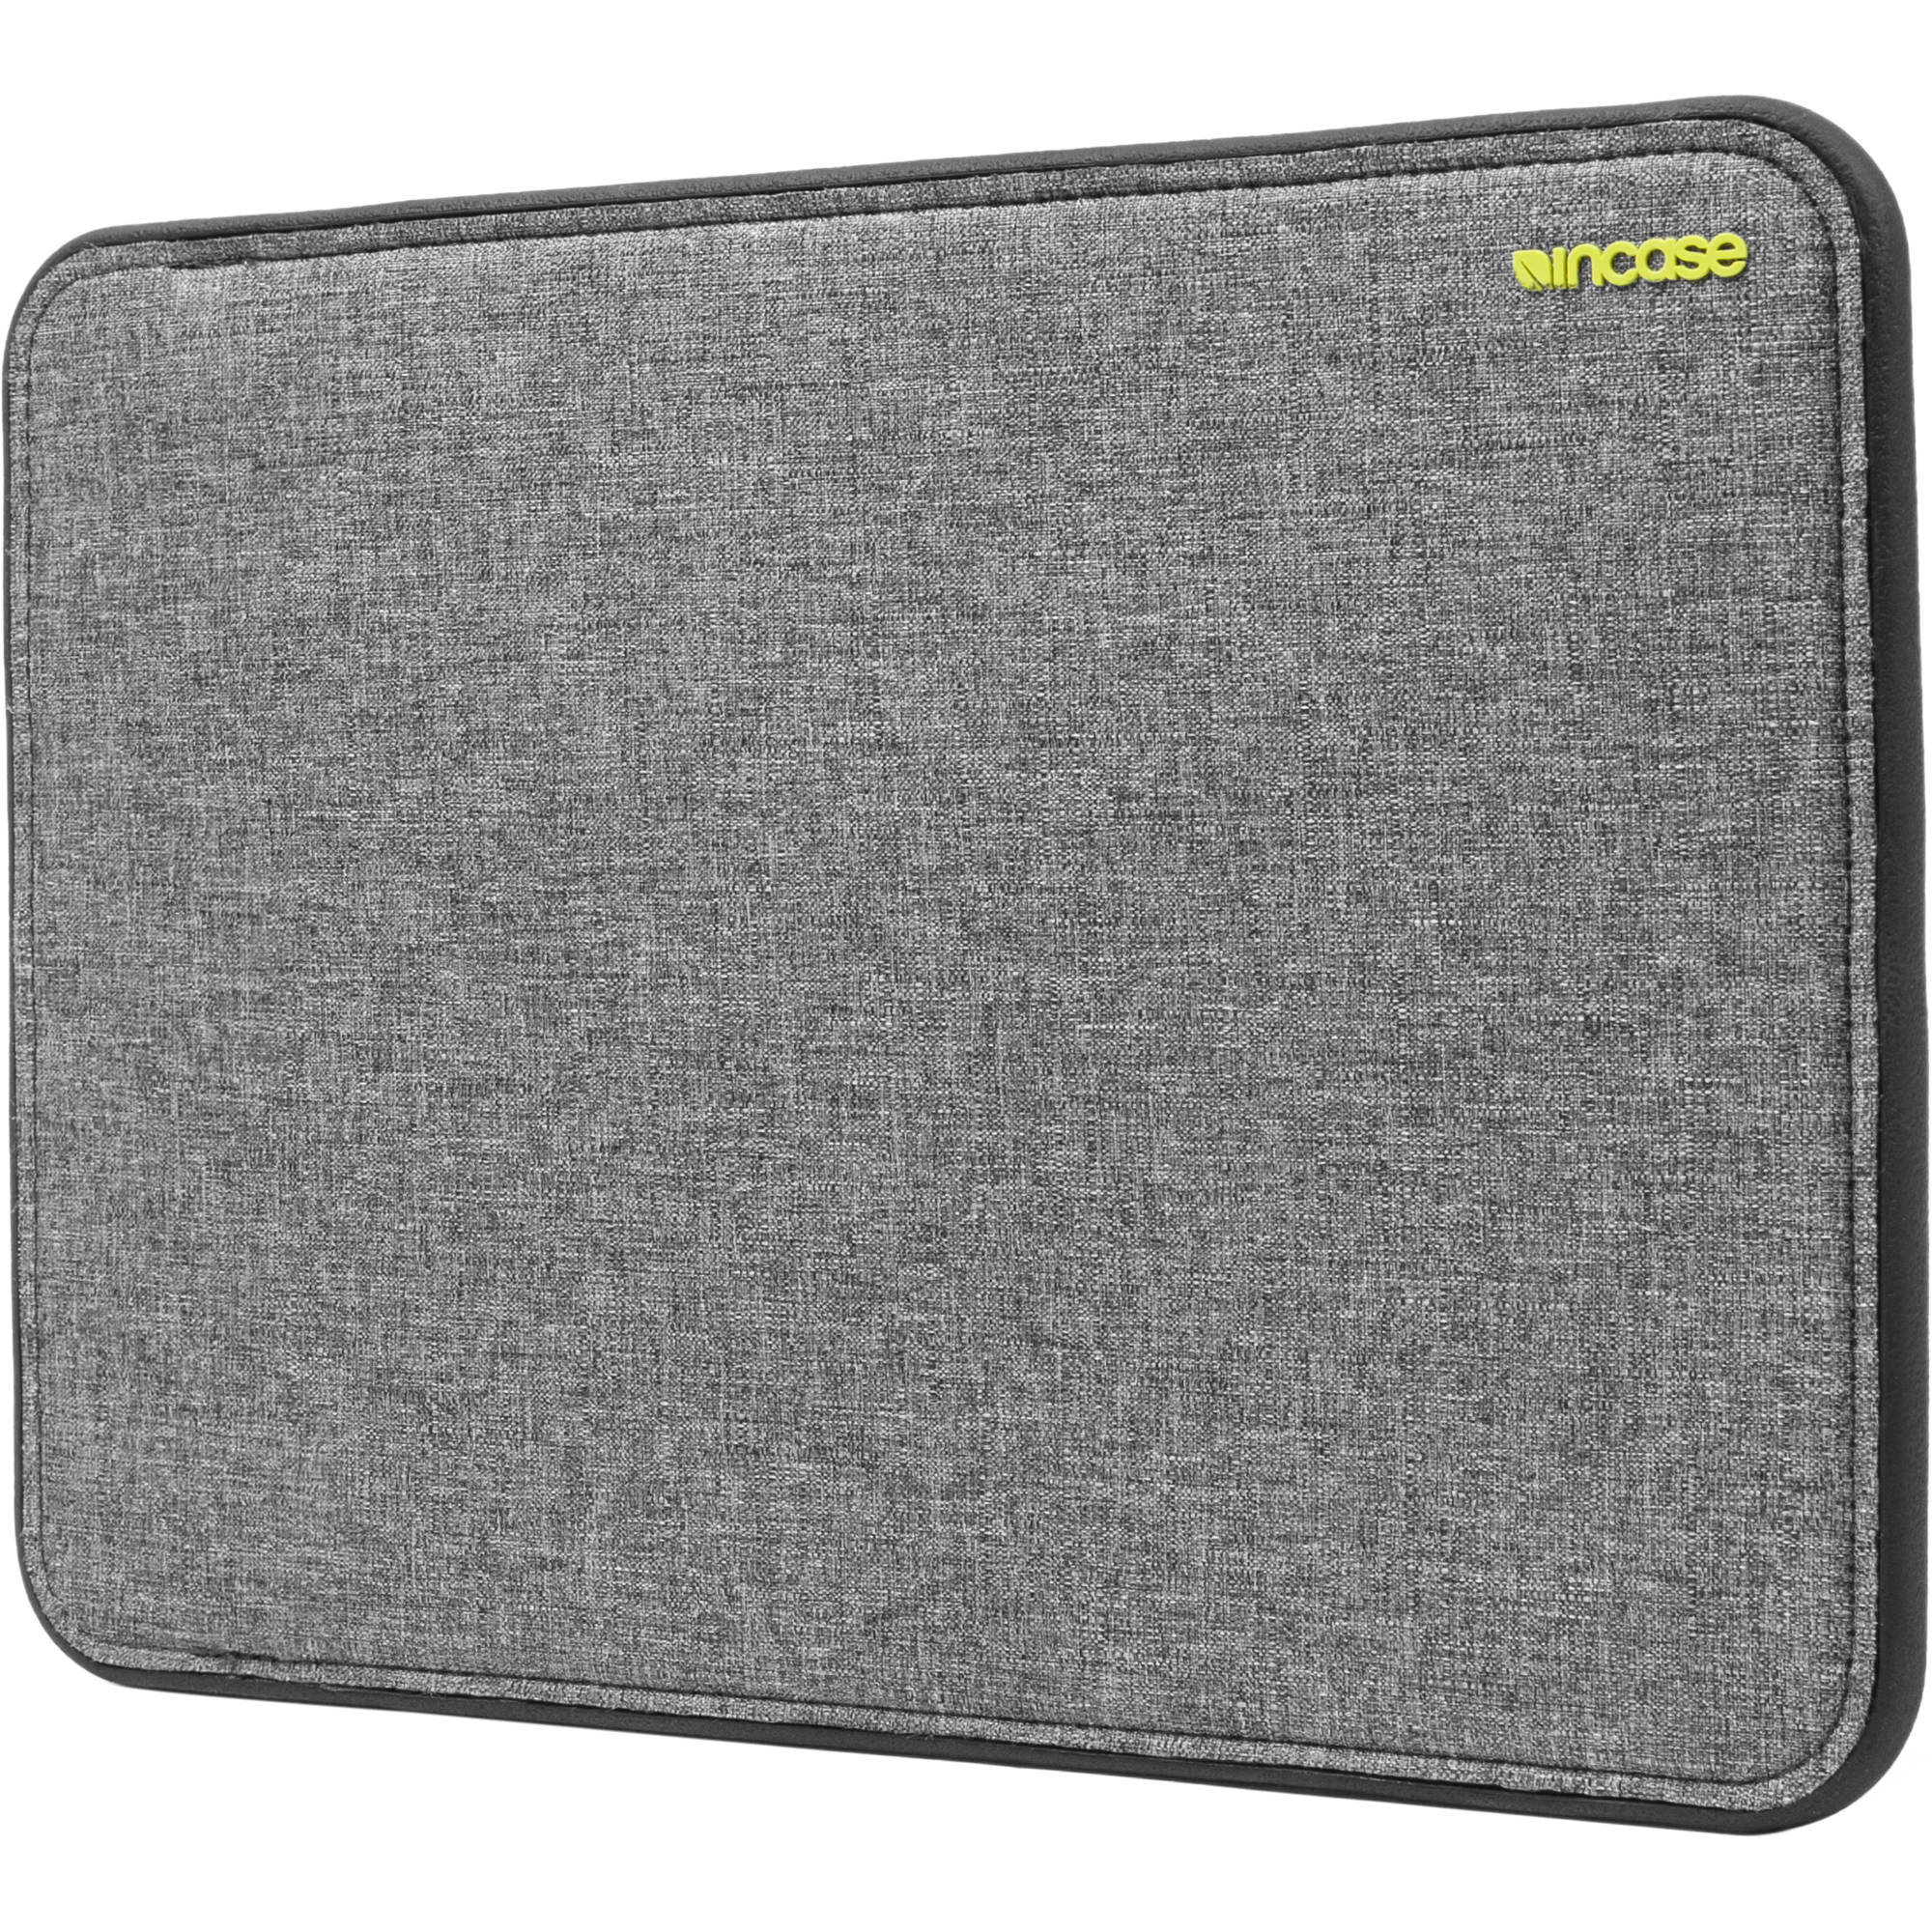 Incase Designs ICON Sleeve with TENSAERLITE for 13 Inch MacBook Pro Retina - Heather Gray / Black - CL60647 (OPEN BOX)